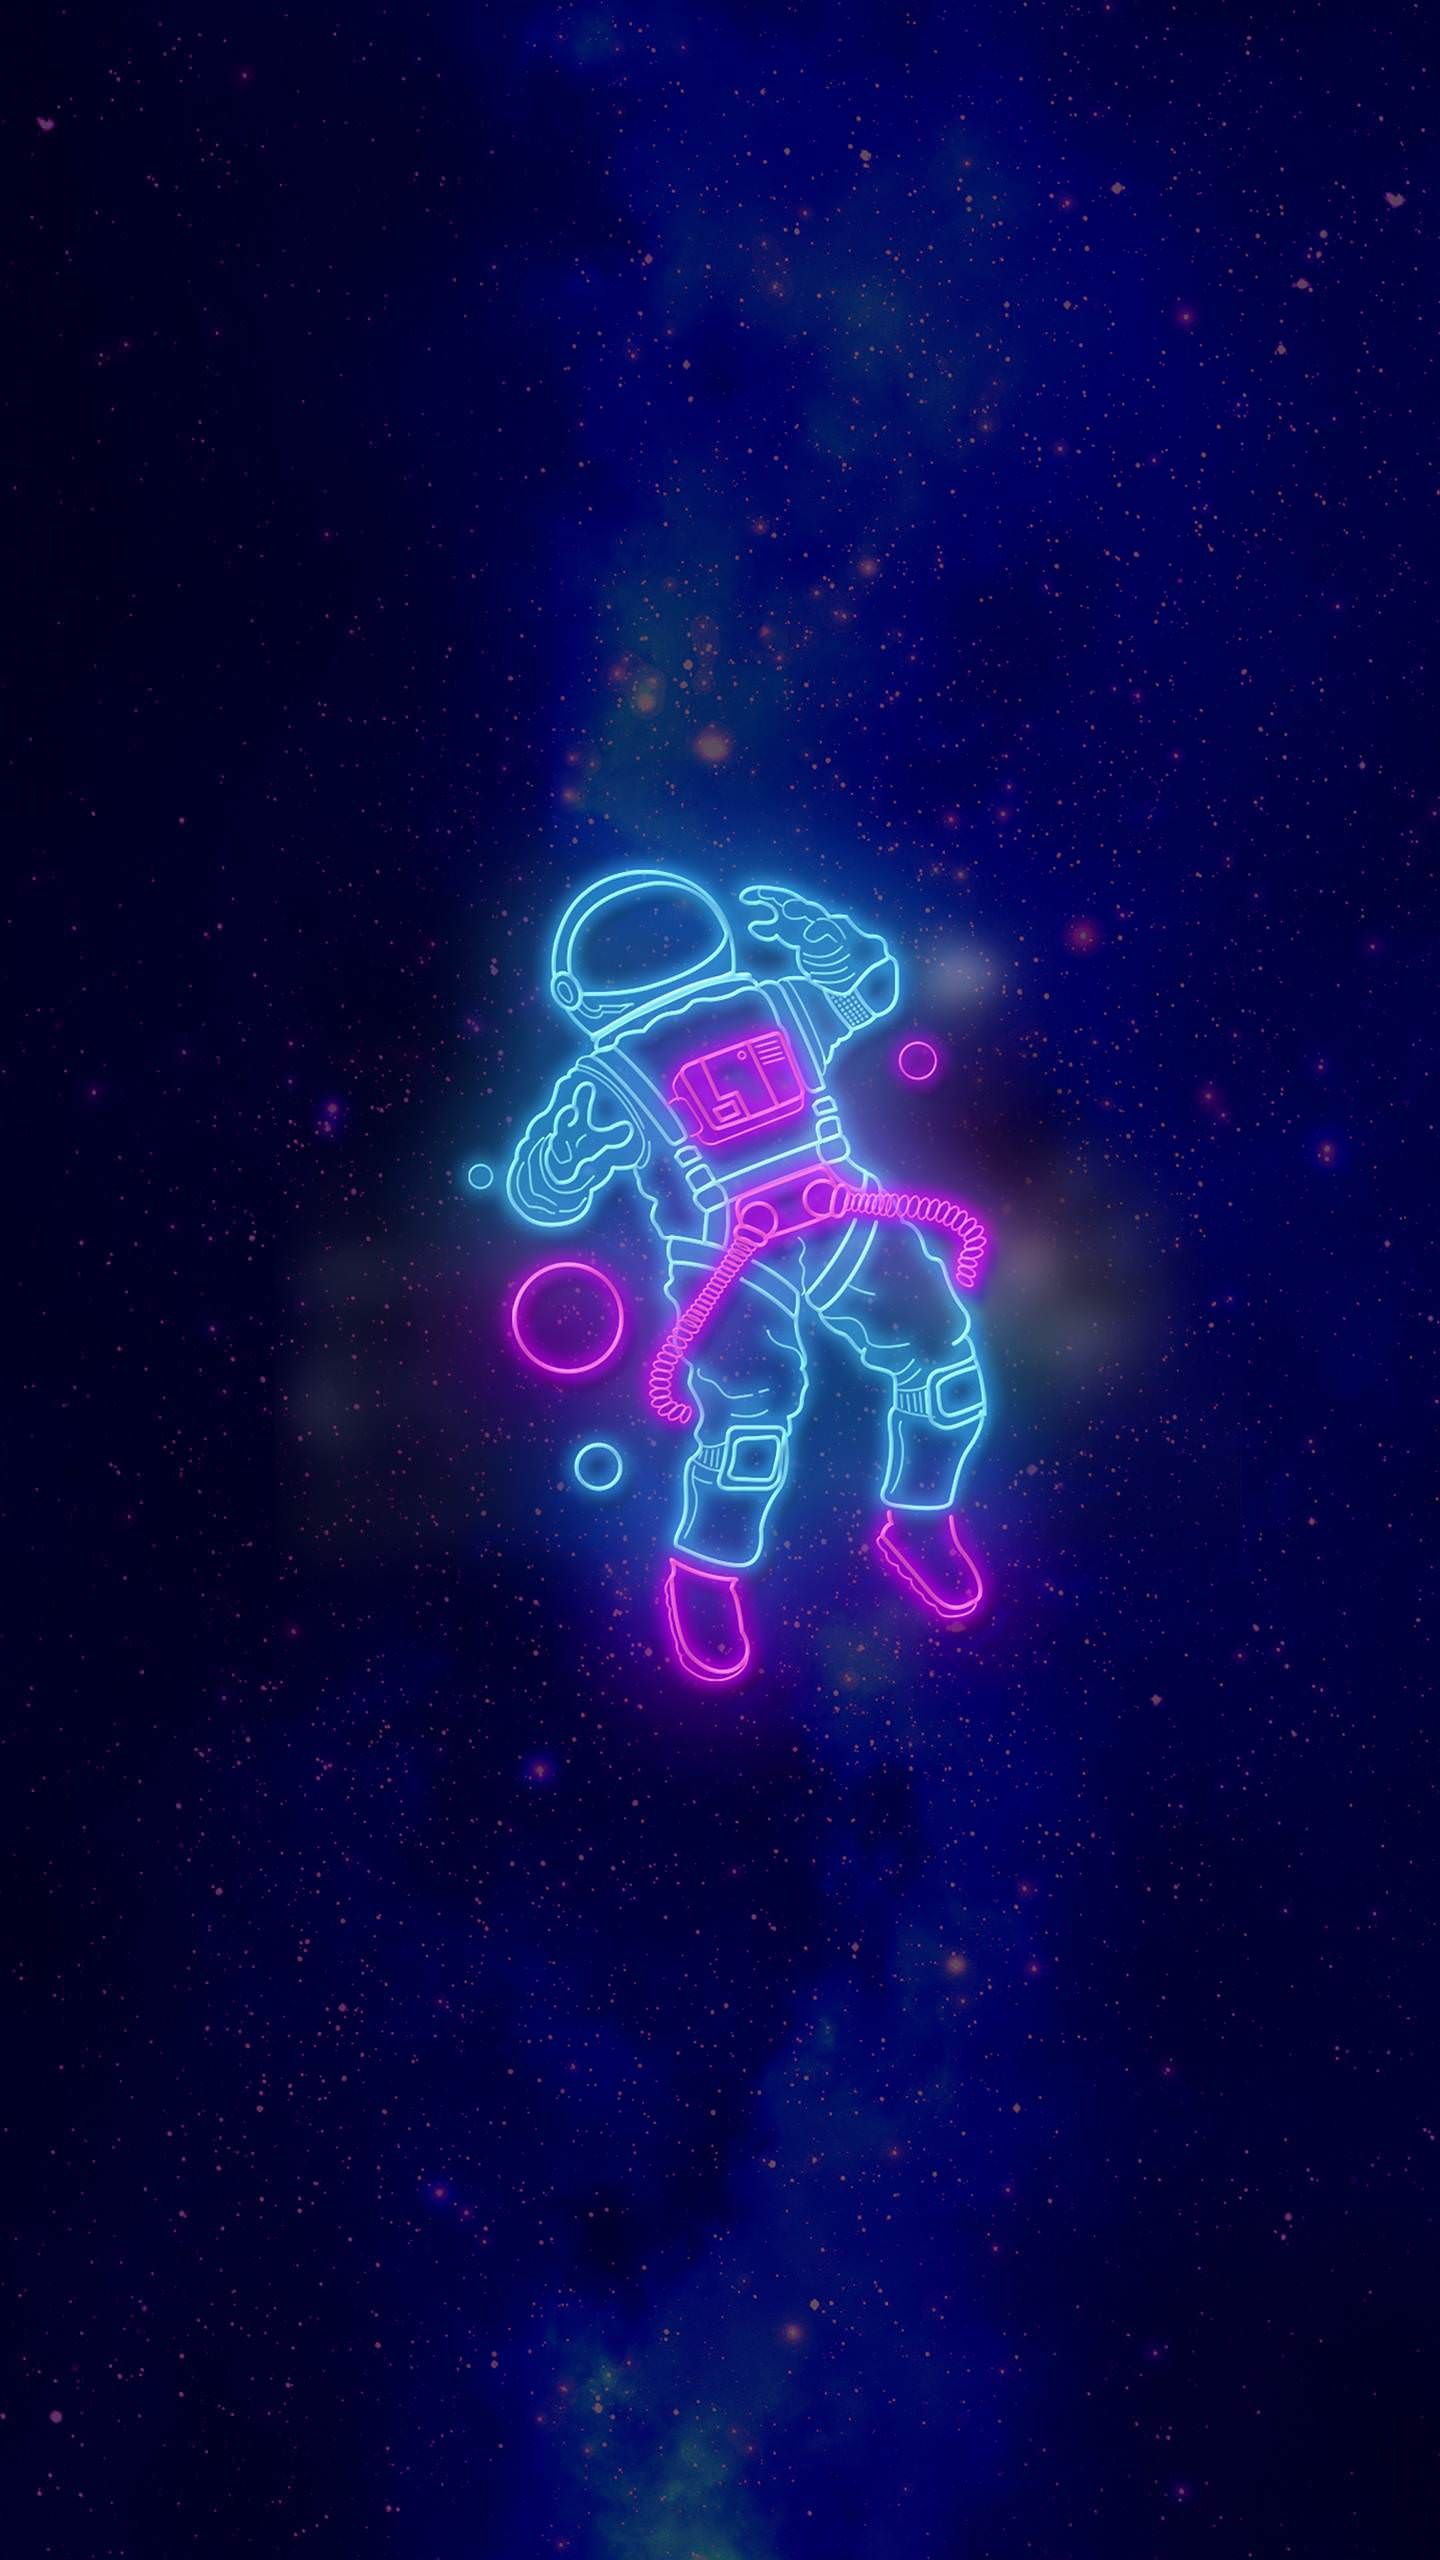 Neon astronaut beautiful wallpaper wallpaper iphone for Sfondi spazio hd